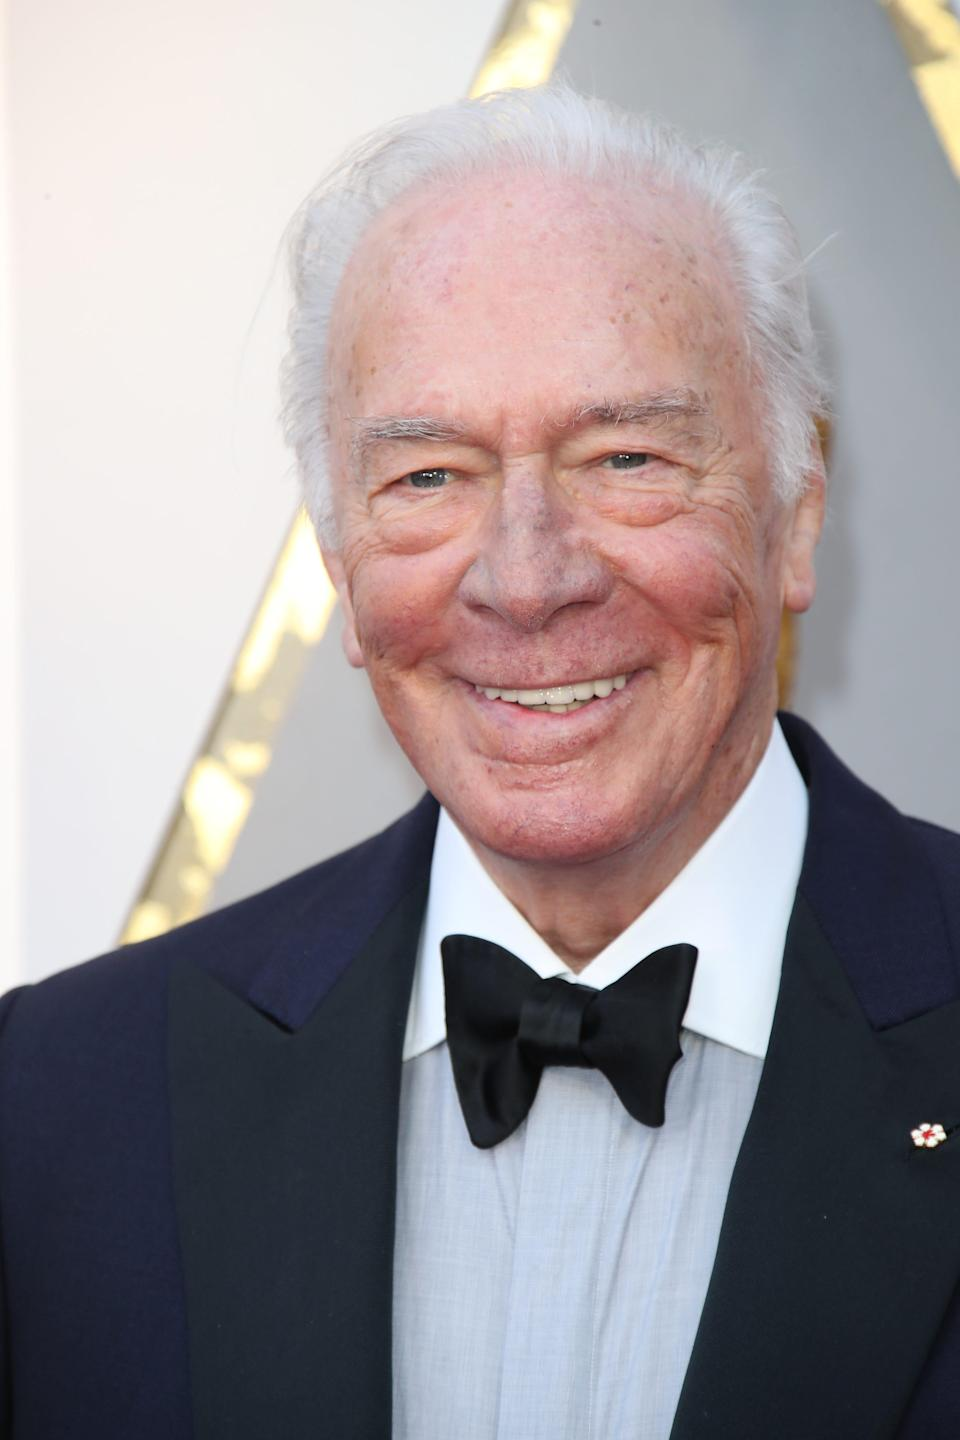 Christopher Plummer, whose acting career spanned decades on the screen and stage, has died at 91.